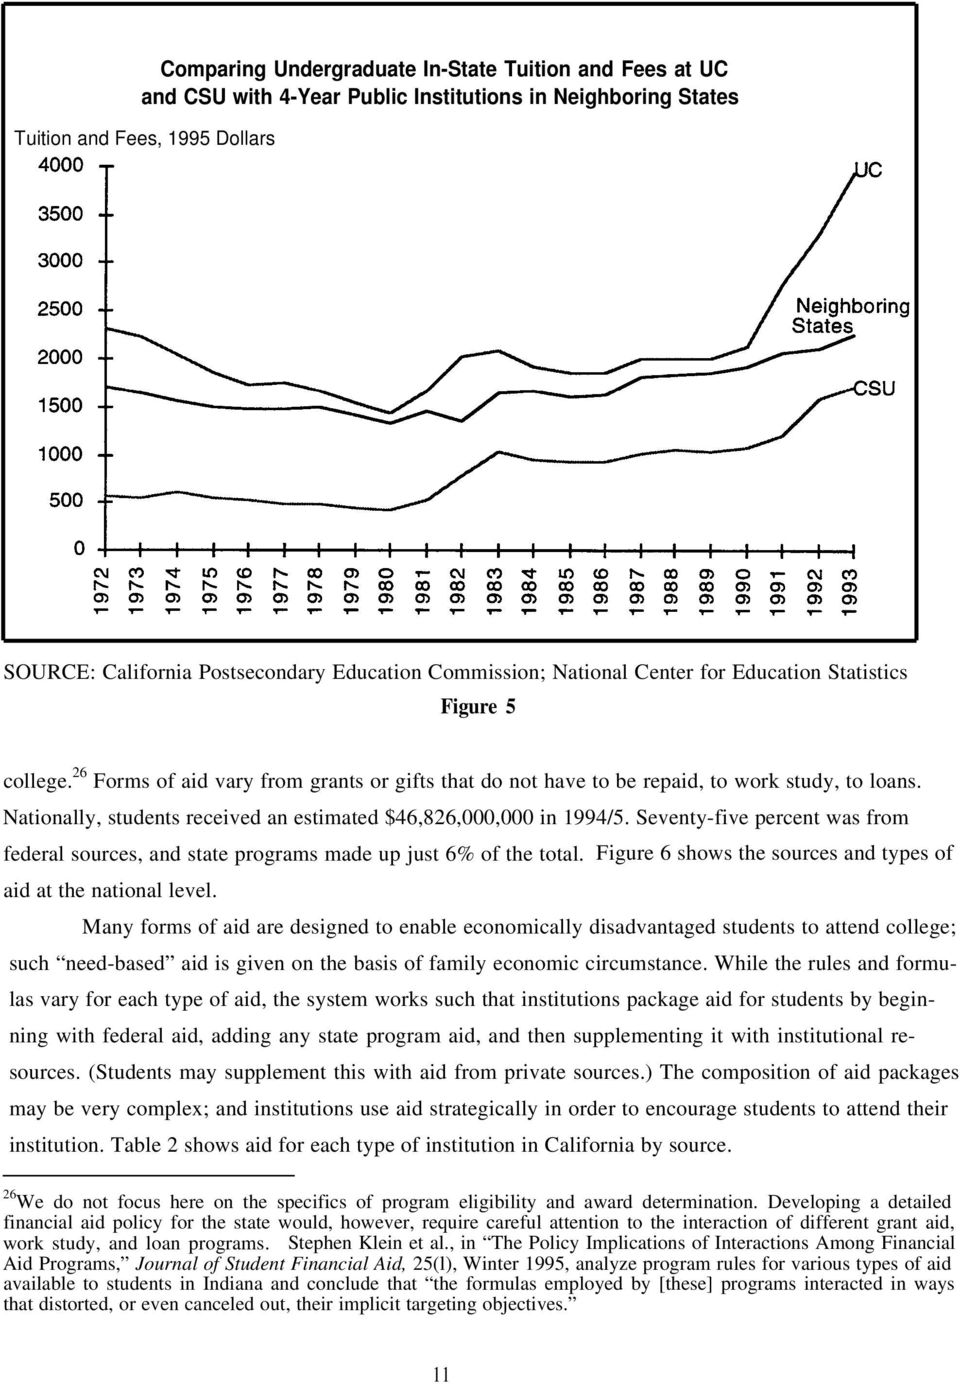 Nationally, students received an estimated $46,826,000,000 in 1994/5. Seventy-five percent was from federal sources, and state programs made up just 6% of the total.